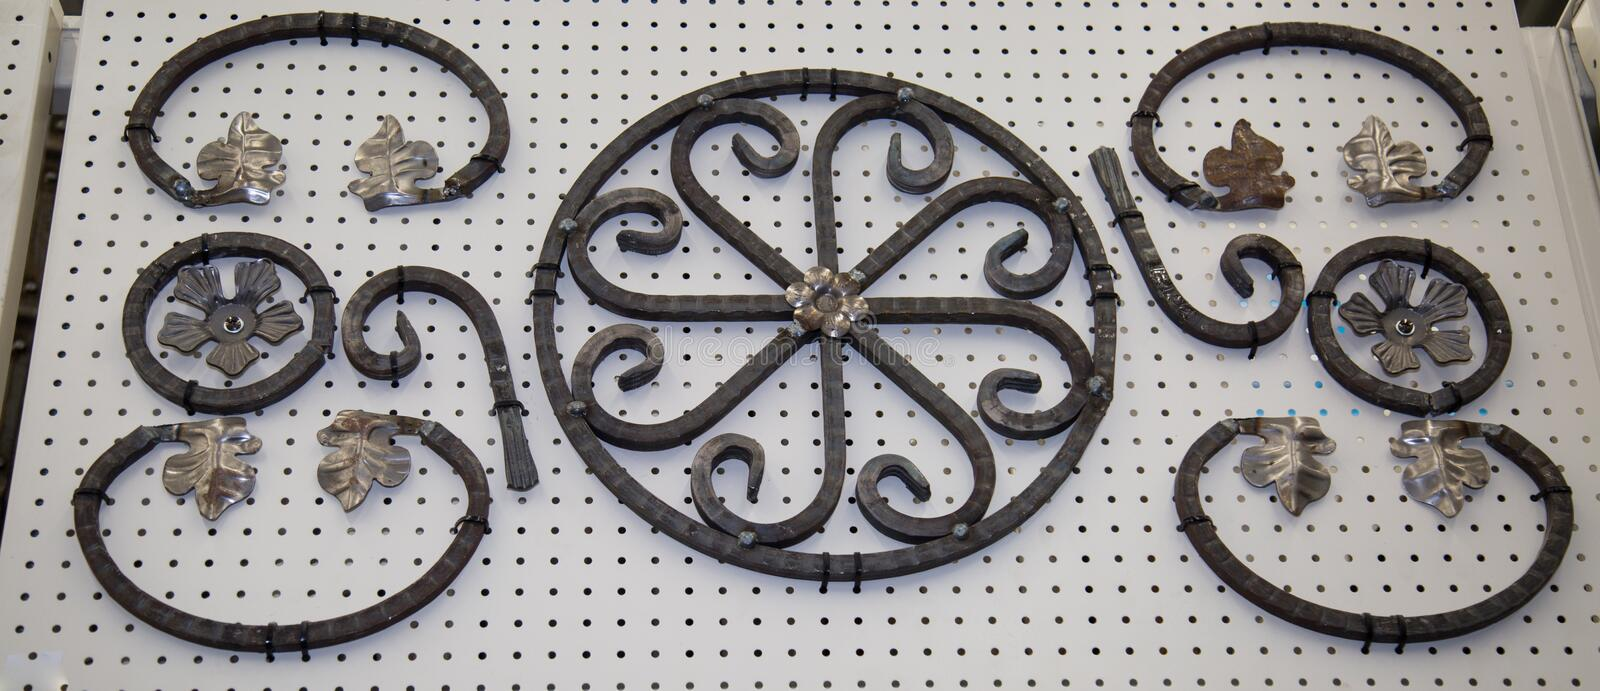 Forged metal products in the form of curls, circles, flowers, leaves fixed on a white stand. Construction, repair, art. Design royalty free stock photography